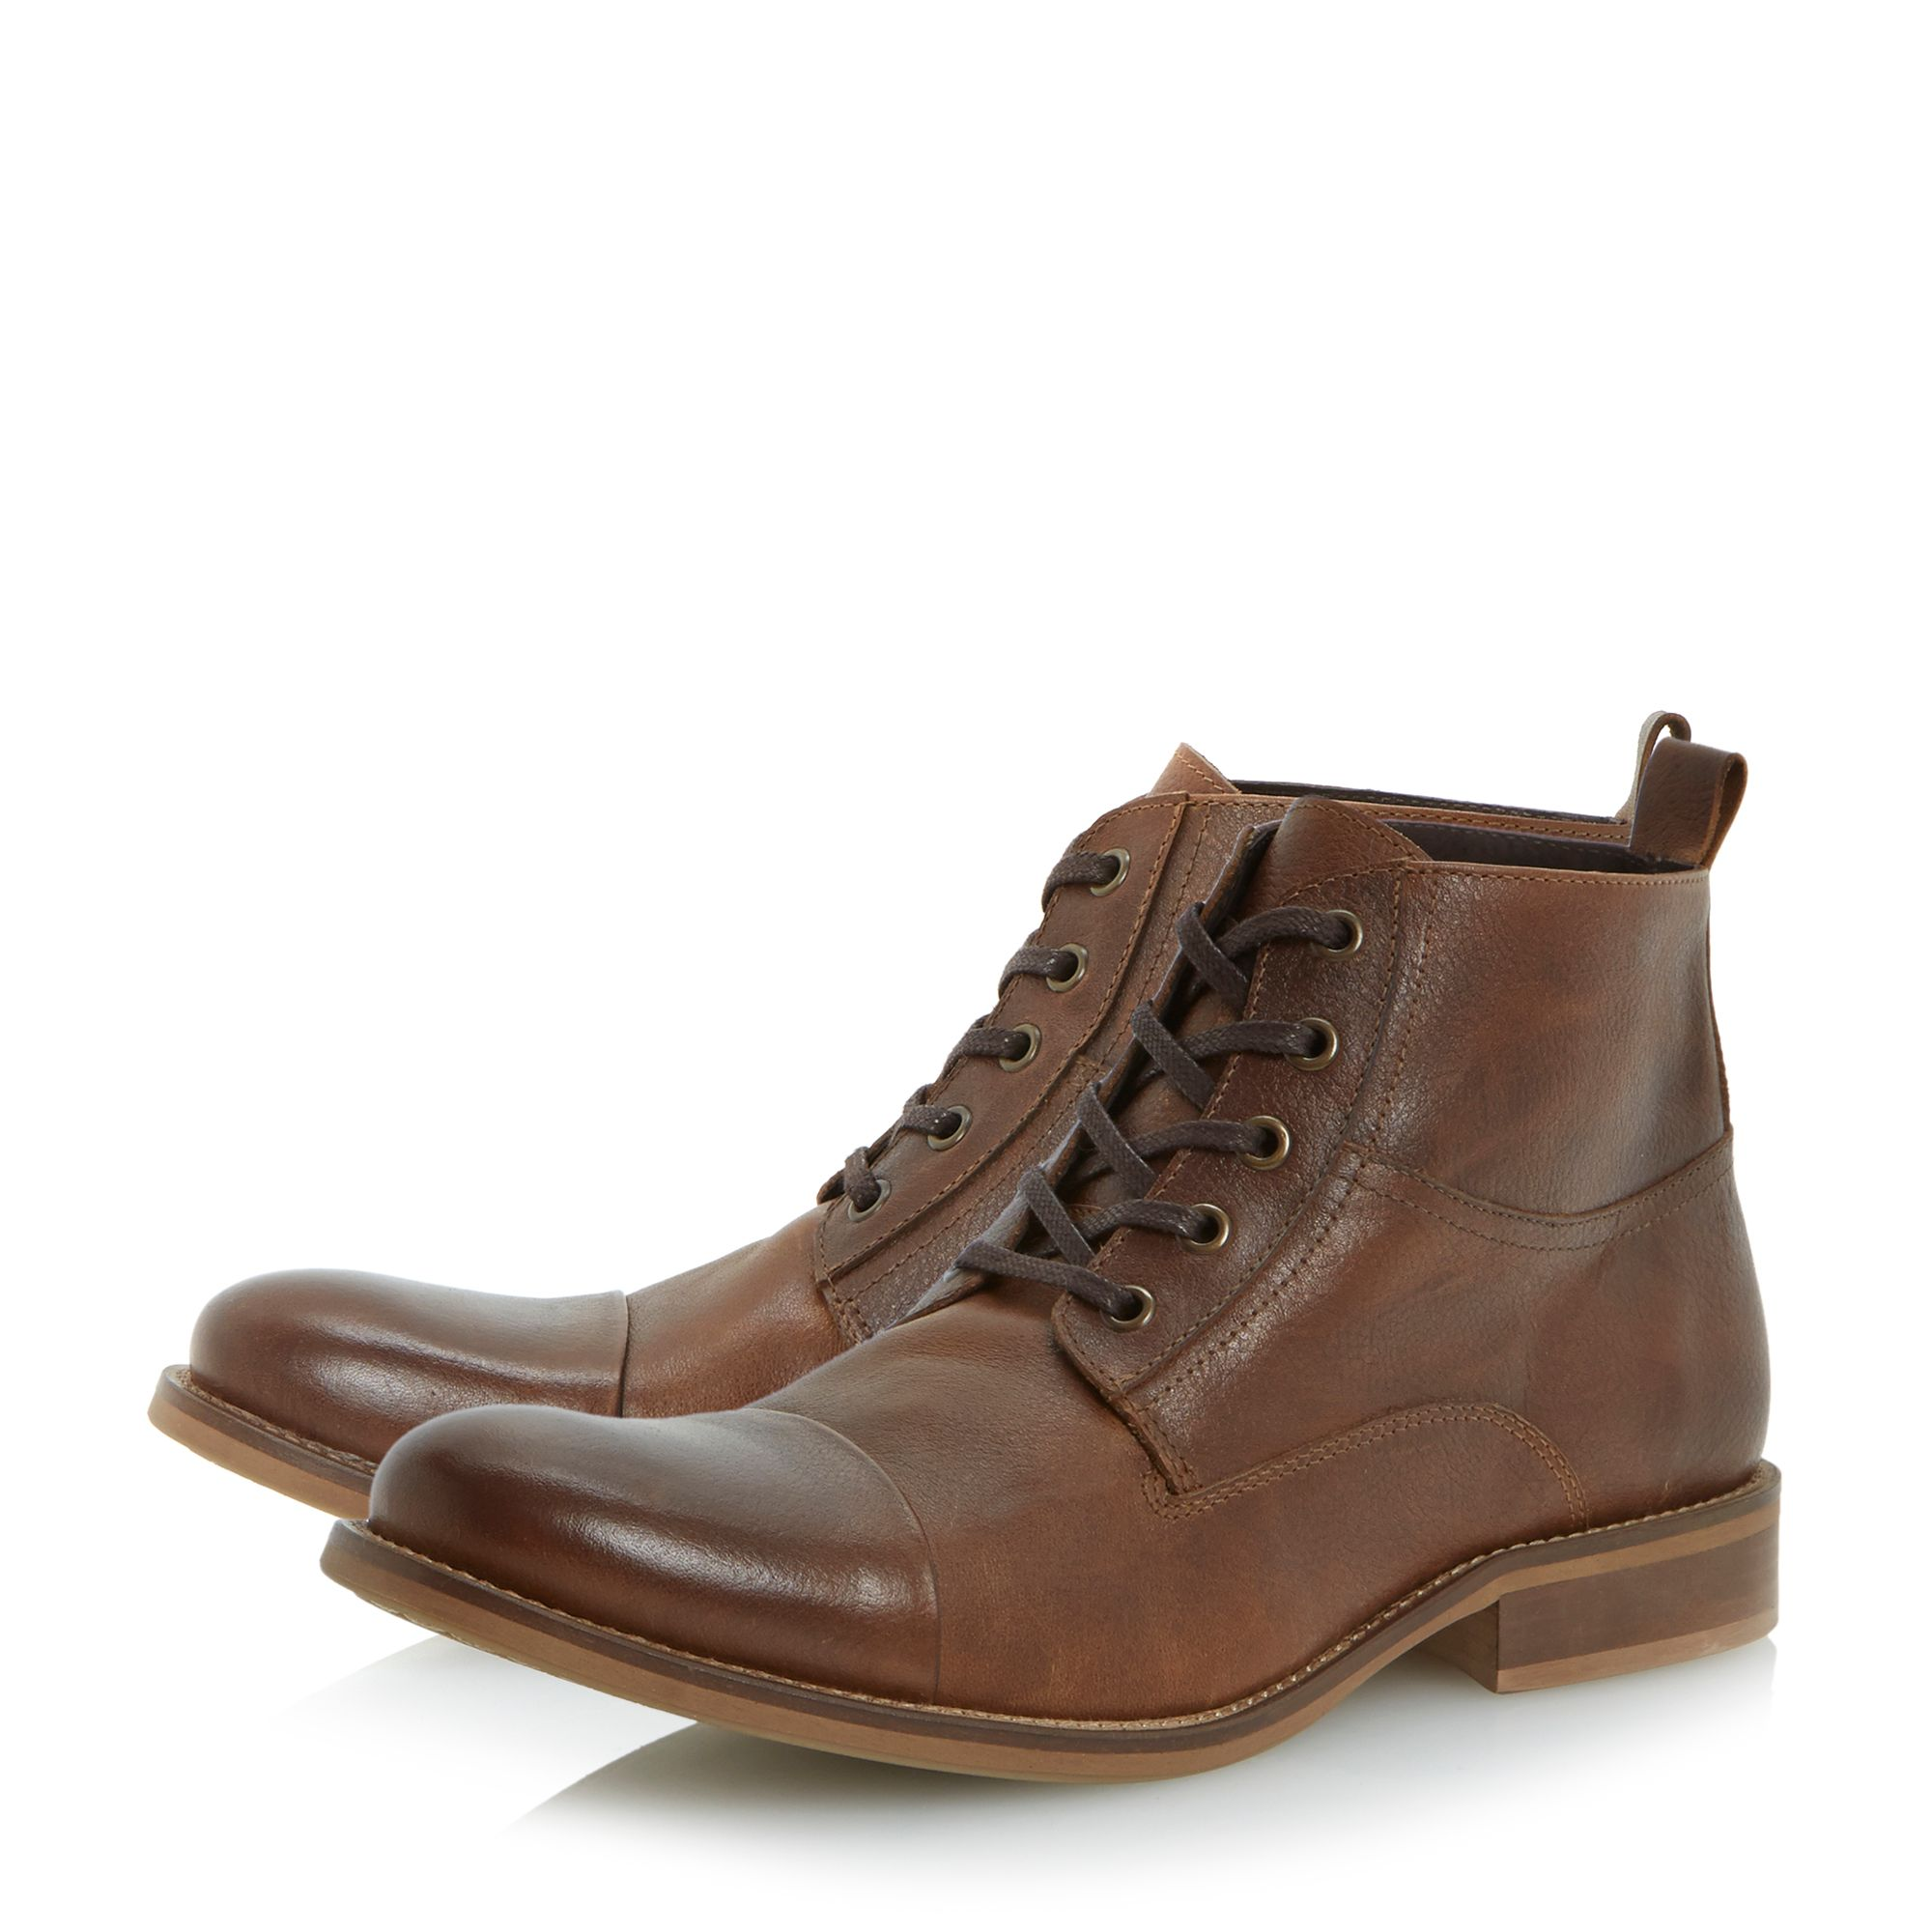 Cadet toecap lace up boots